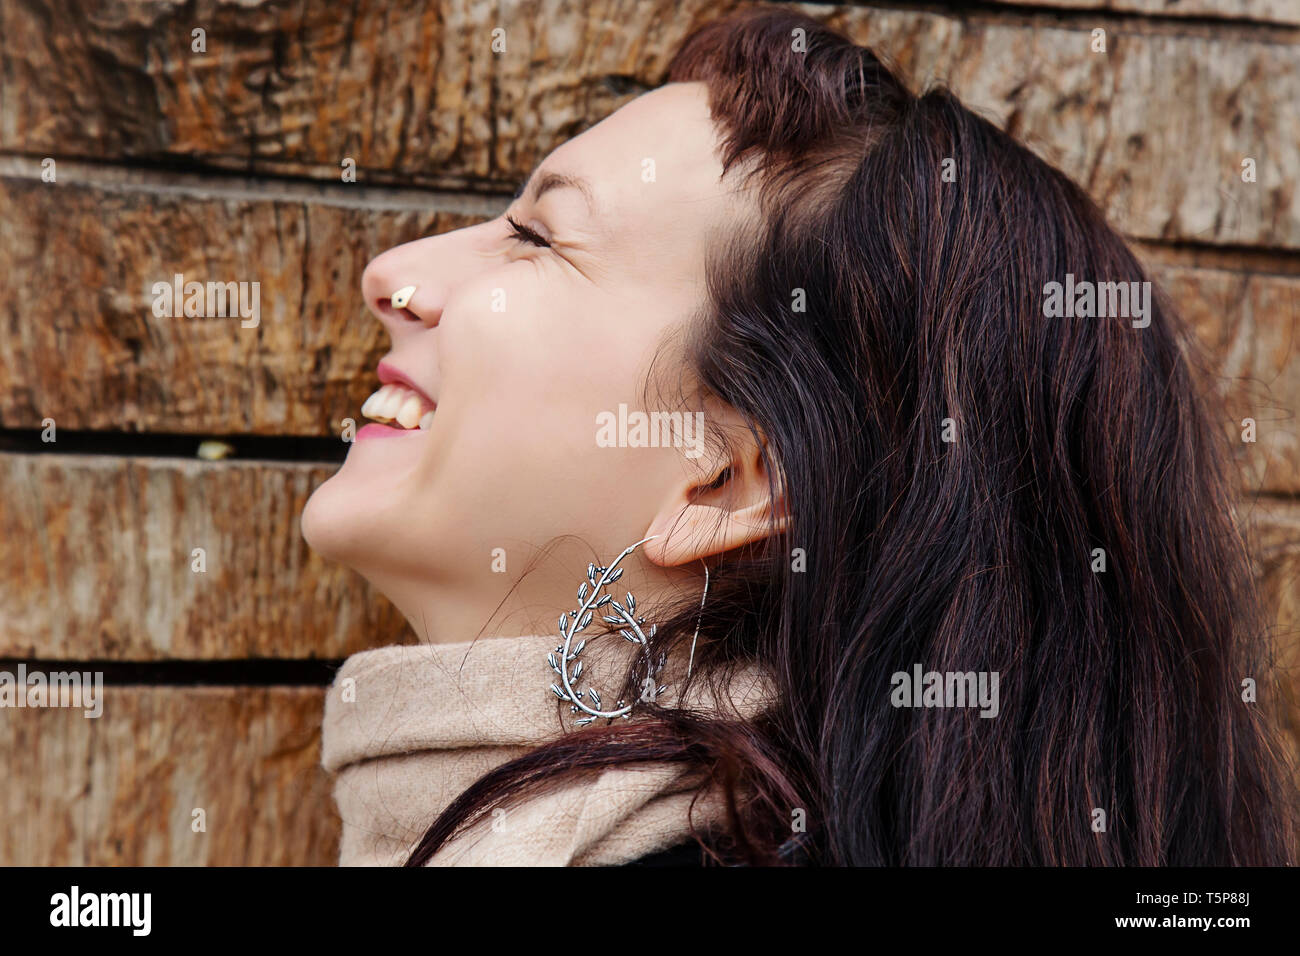 9b7b6f9f2 Outdoor close up portrait of beautiful woman wearing silver earrings -  Stock Image